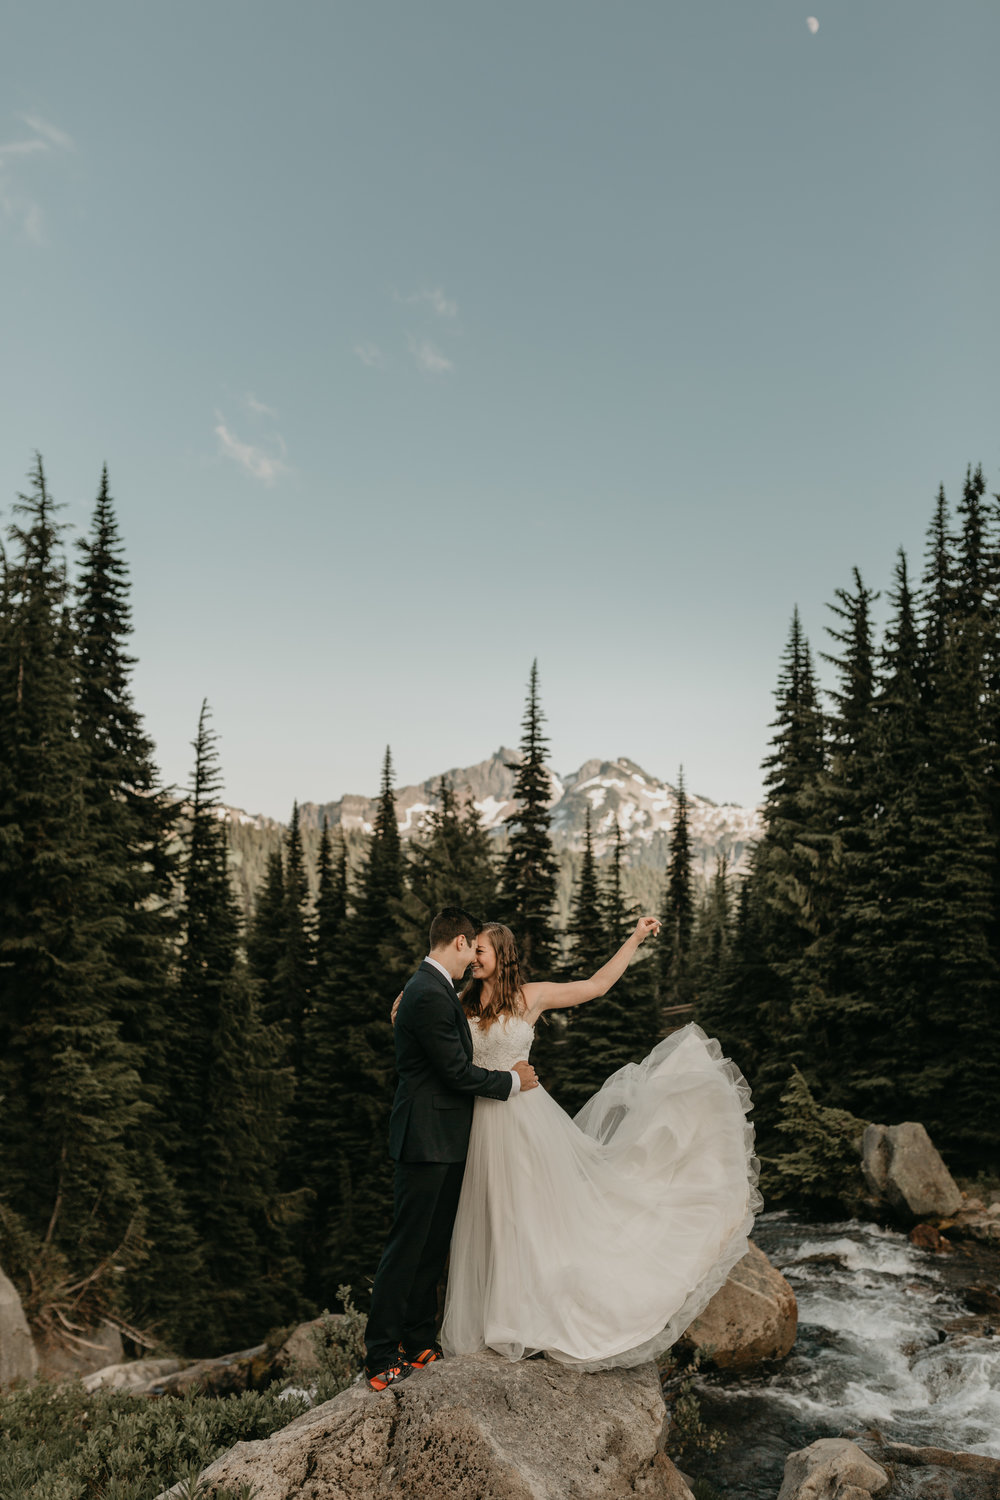 nicole-daacke-photography-adventurous-elopement-traveling-destination-wedding-photographer-national-park-engagement-sessions-7091.jpg